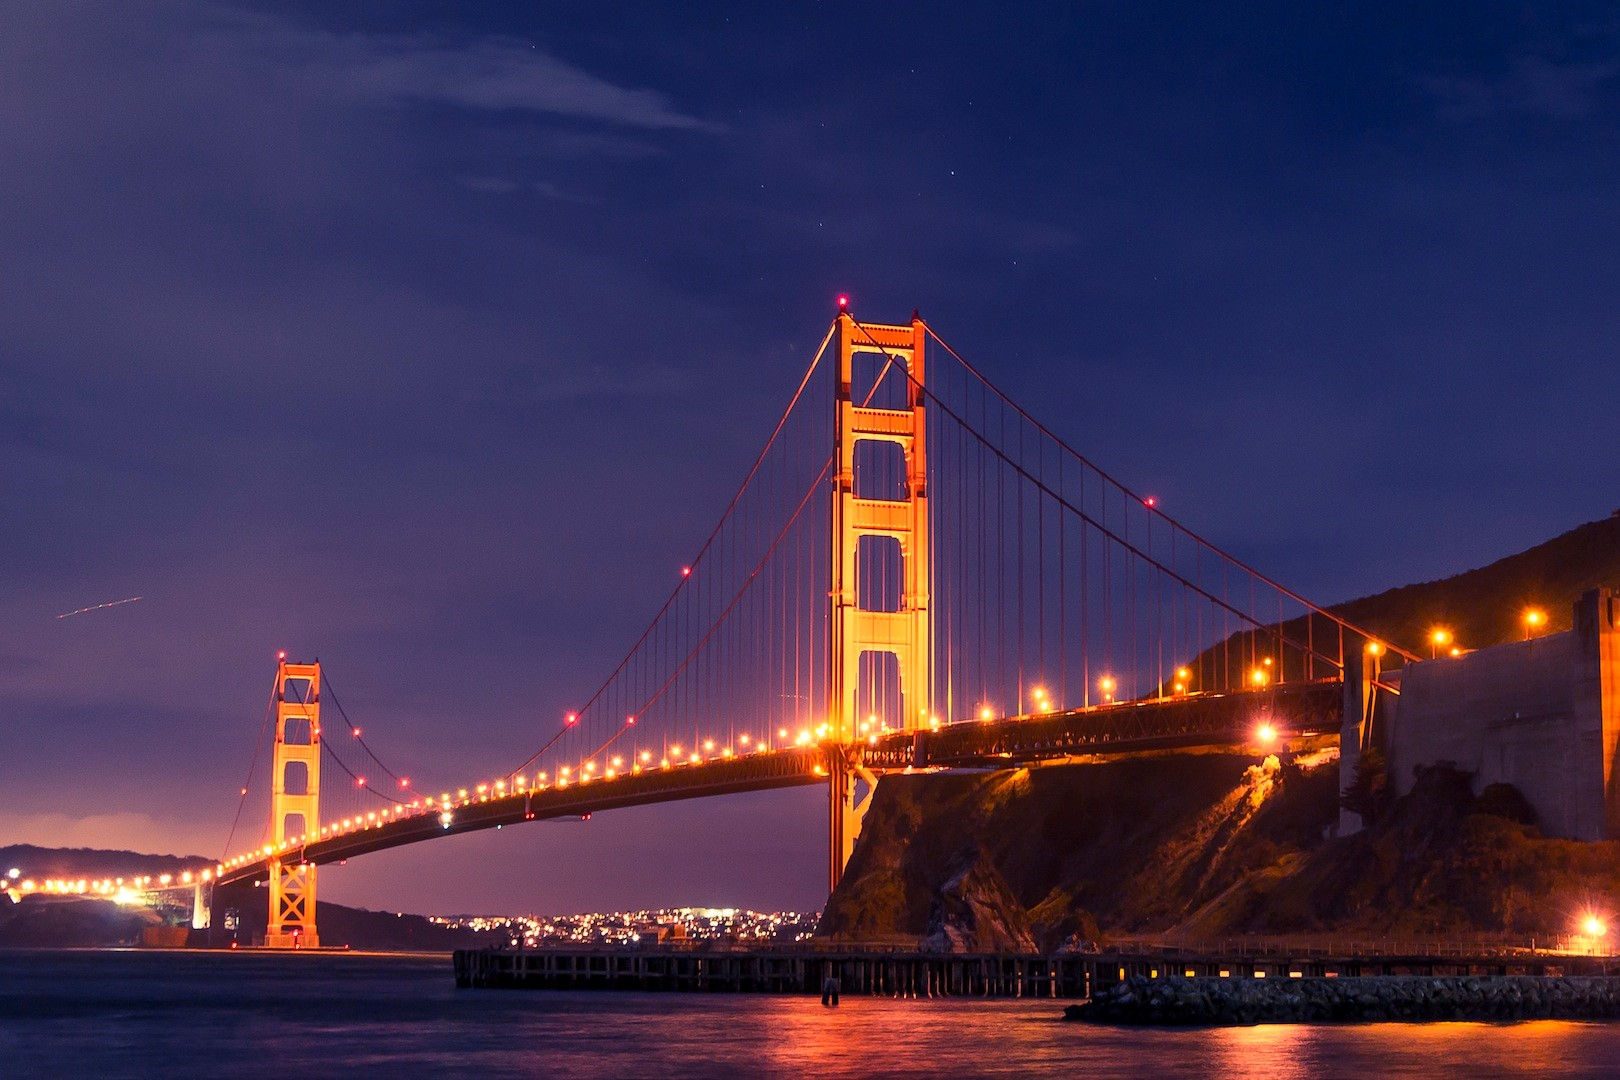 Le Golden Gate de San Francisco de nuit